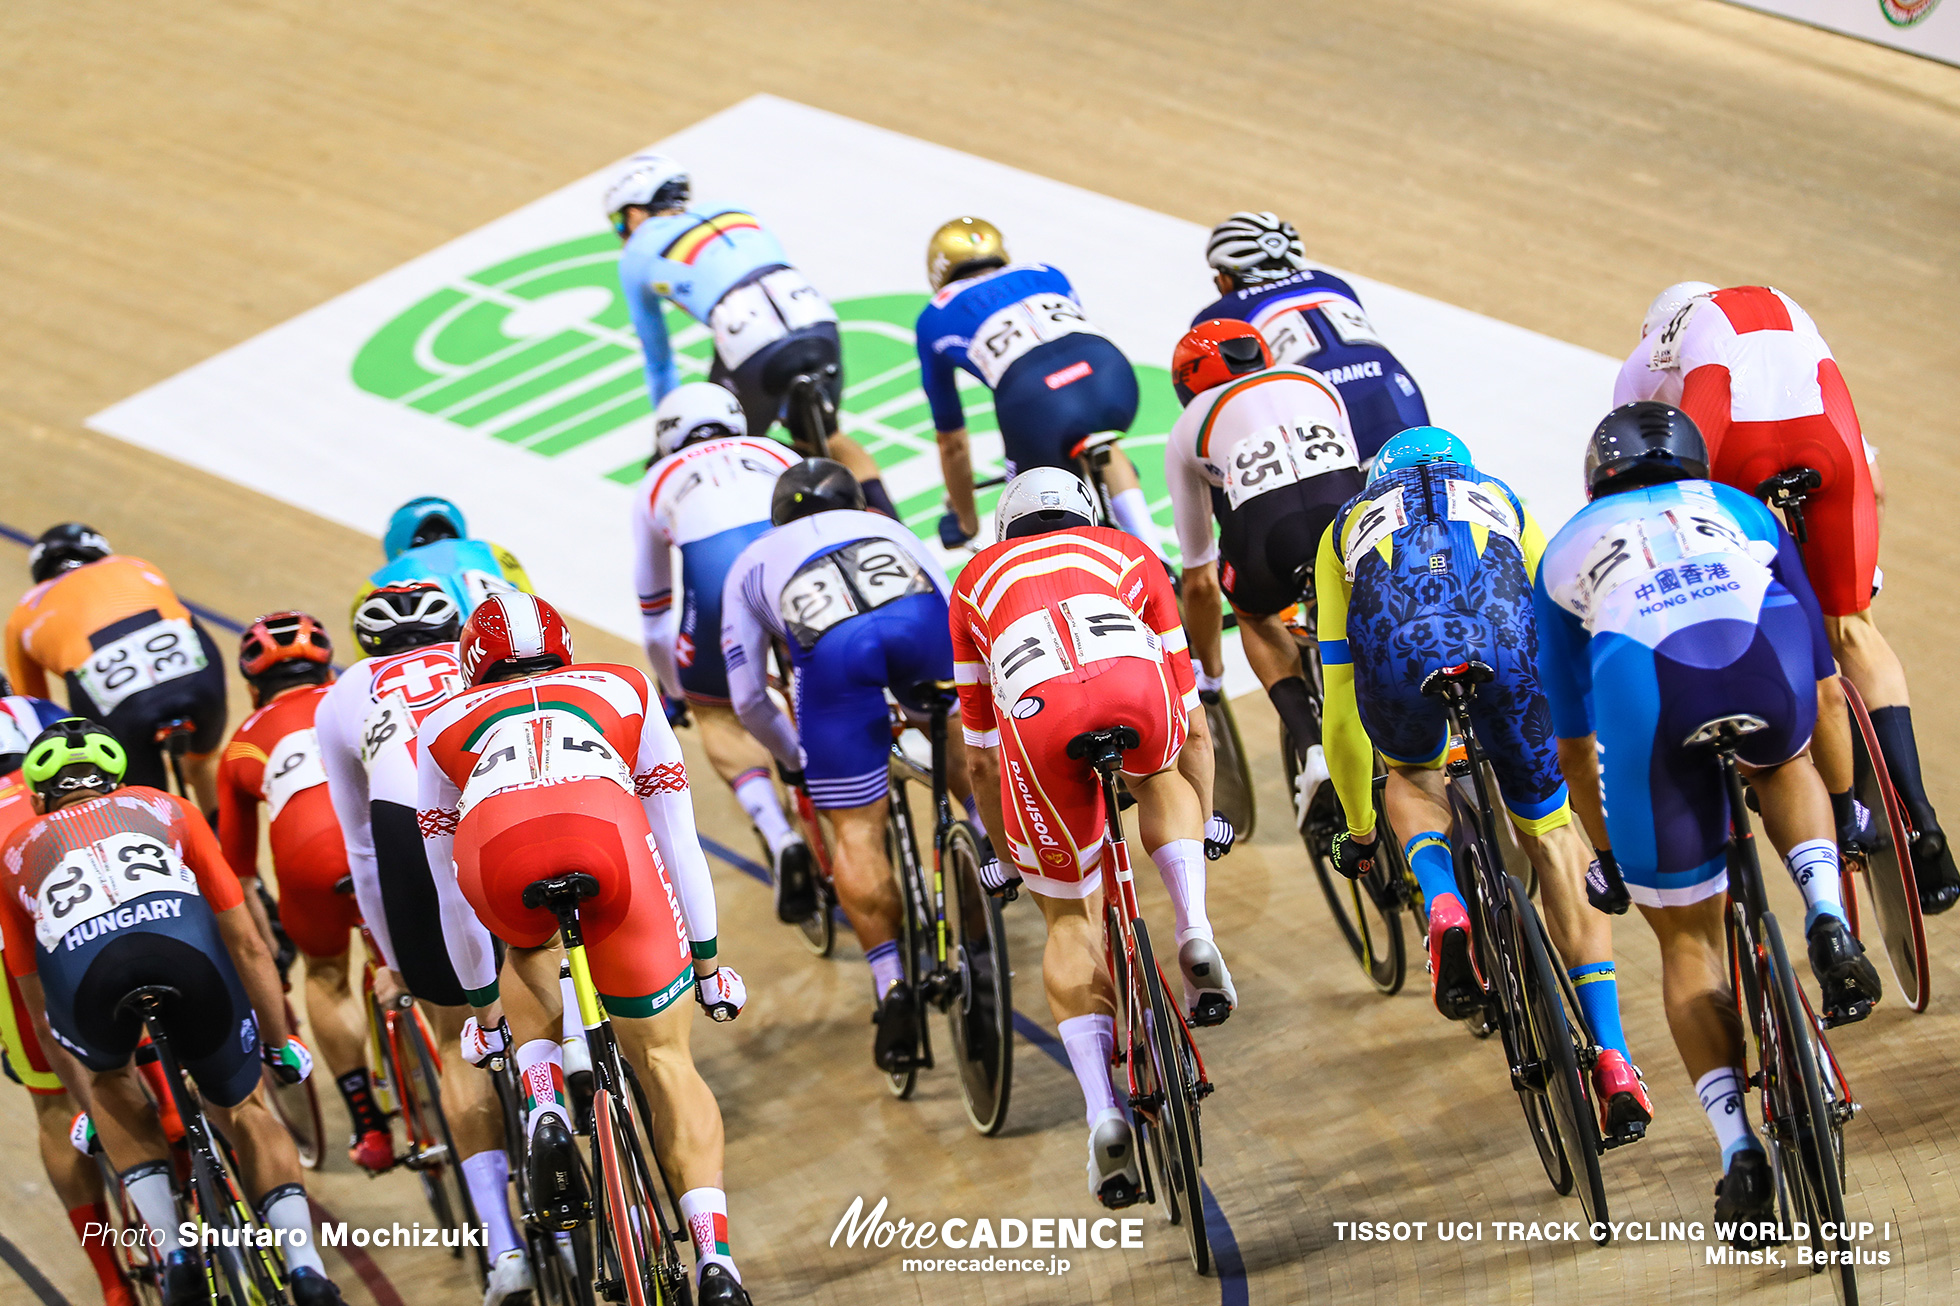 Elimination / Men's Omnium / TISSOT UCI TRACK CYCLING WORLD CUP I, Minsk, Beralus